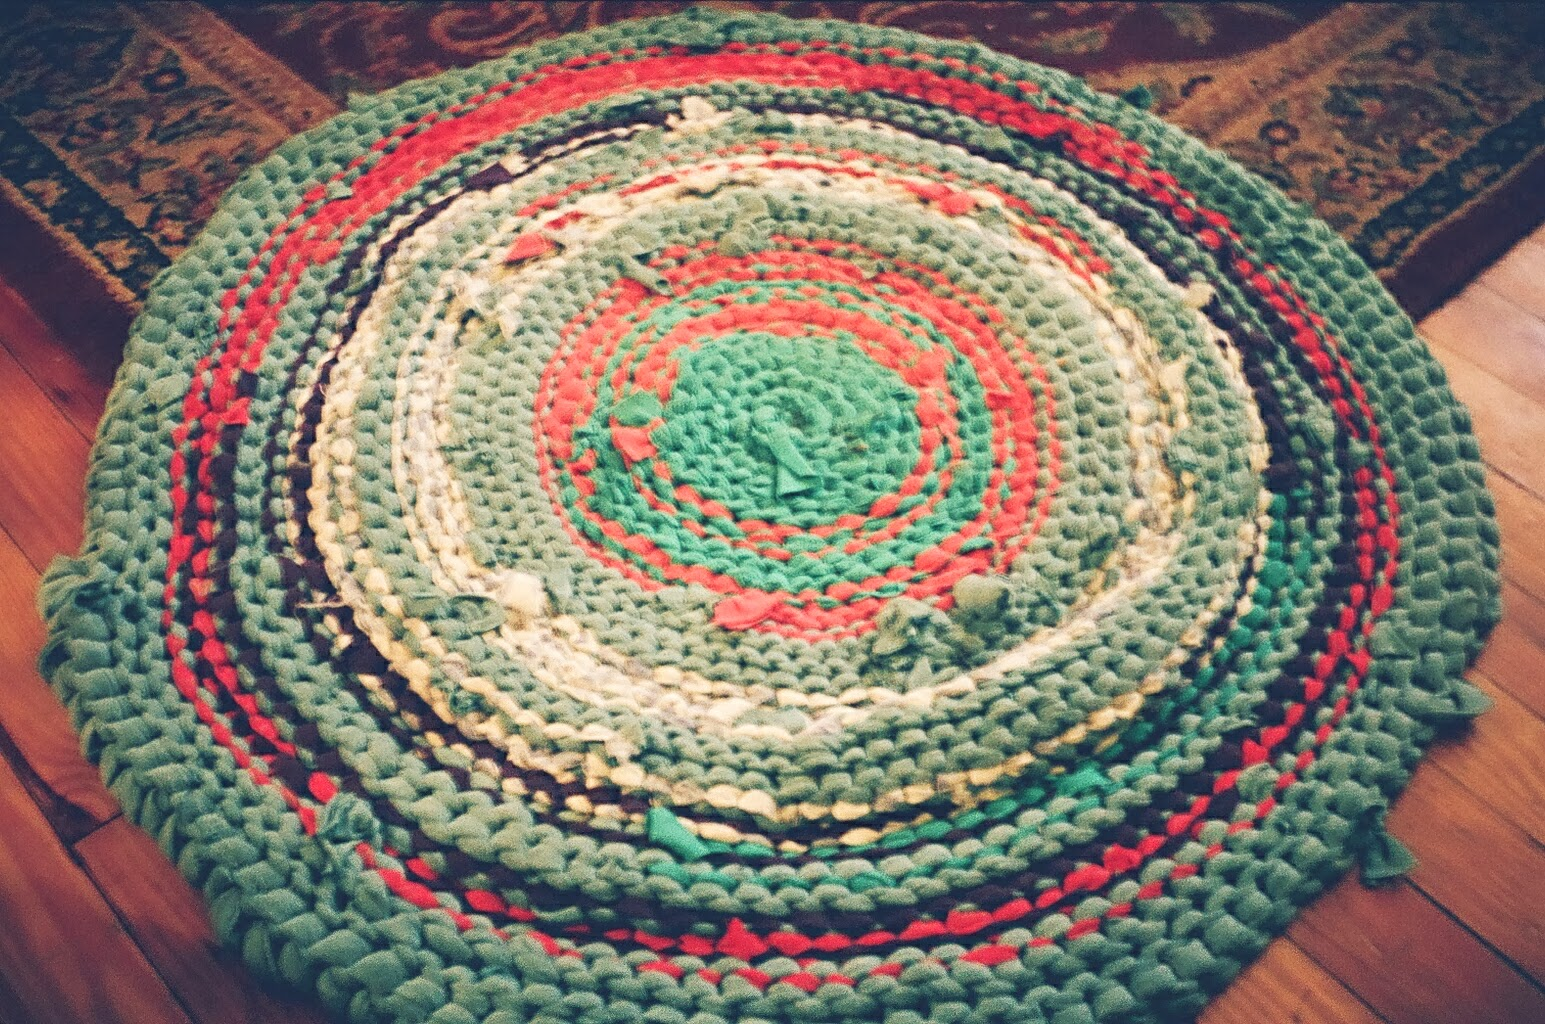 Crocheting A Rug : Rug+Crochet+Hook Tuesday, December 3, 2013